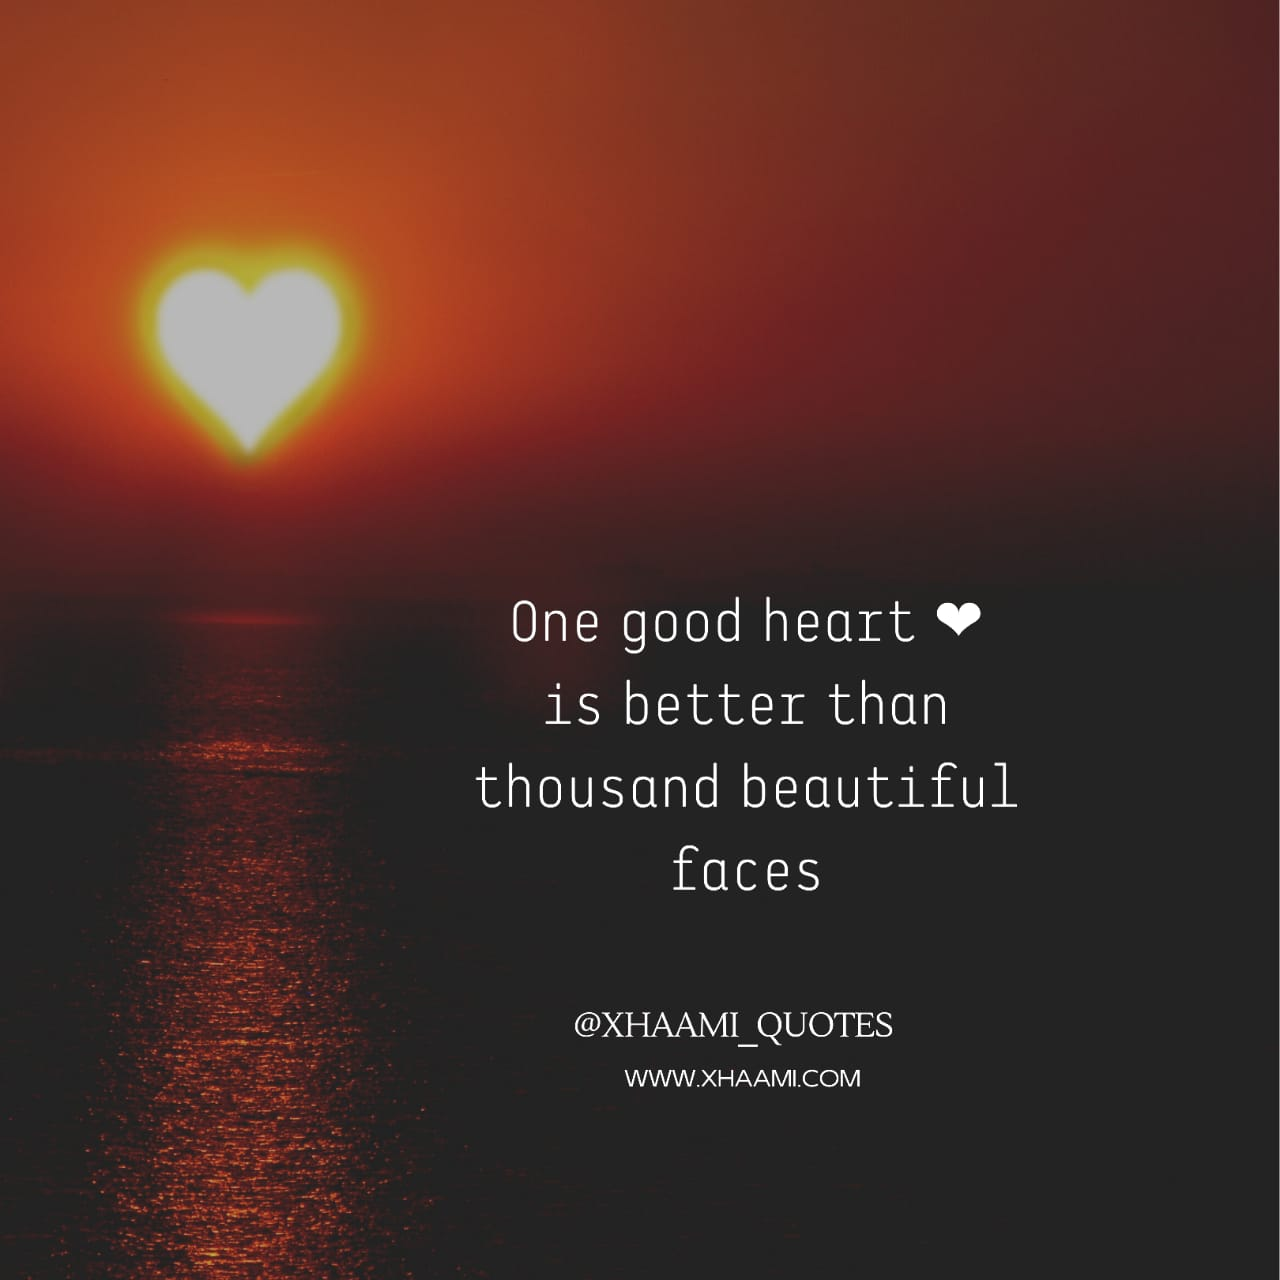 Good heart quotes by xhami